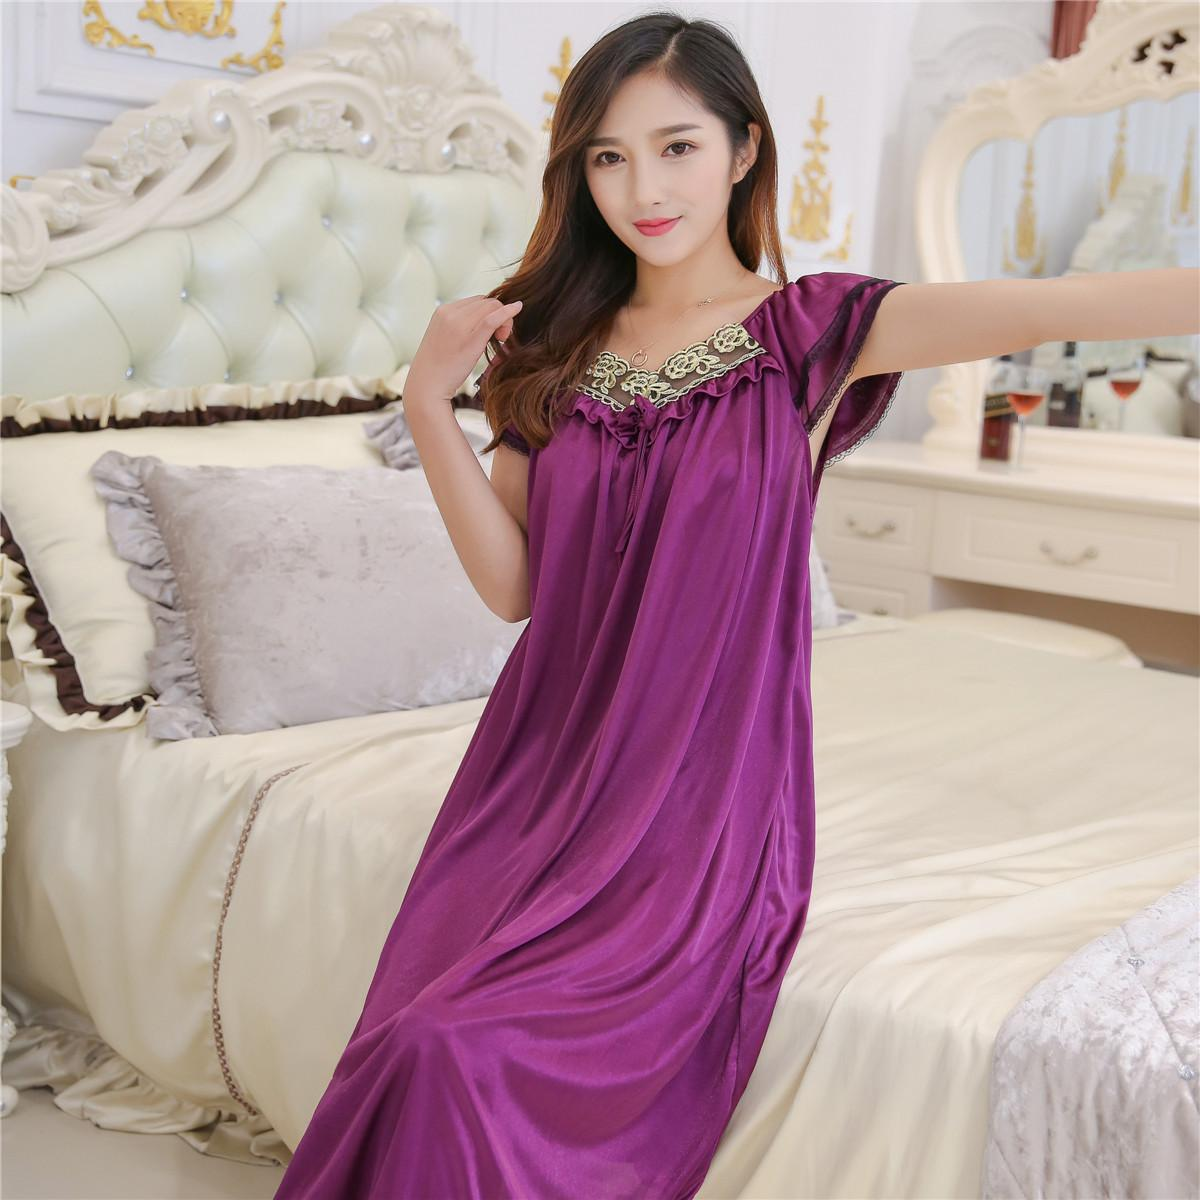 3749ff4bc1 2019 Wholesale Lace Nightgowns Summer Ice Silk Nightgown Ms. MM Skirt Plus  Size Fat Thin Clothes Sexy Sleepwear From Dalivid, $25.32 | DHgate.Com